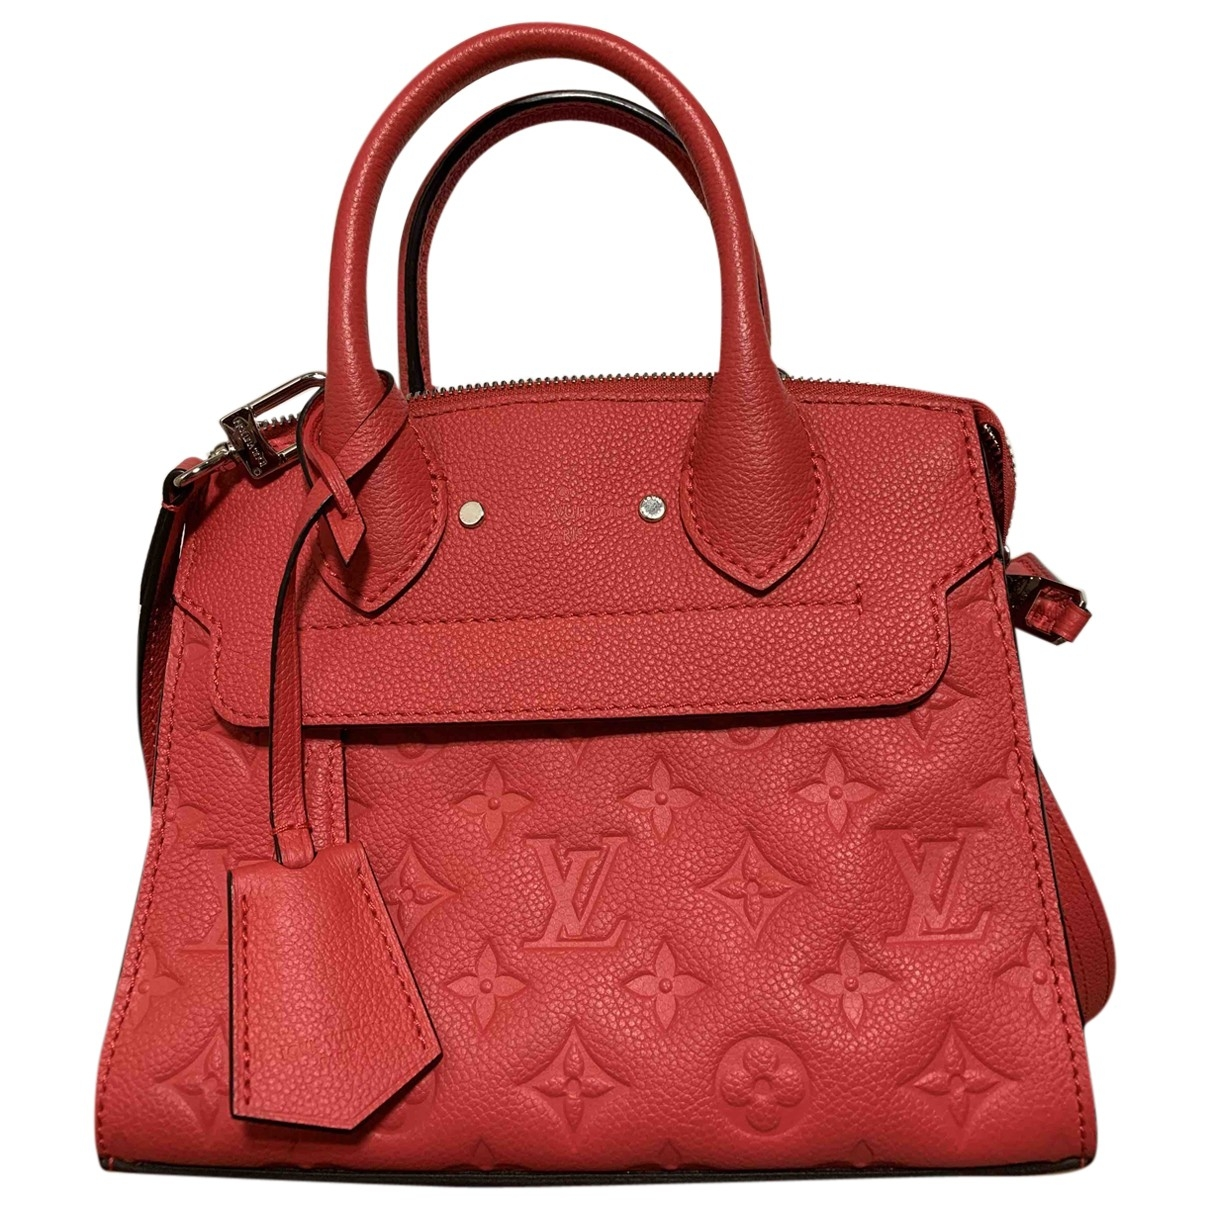 Louis Vuitton Pont Neuf Red Leather handbag for Women \N